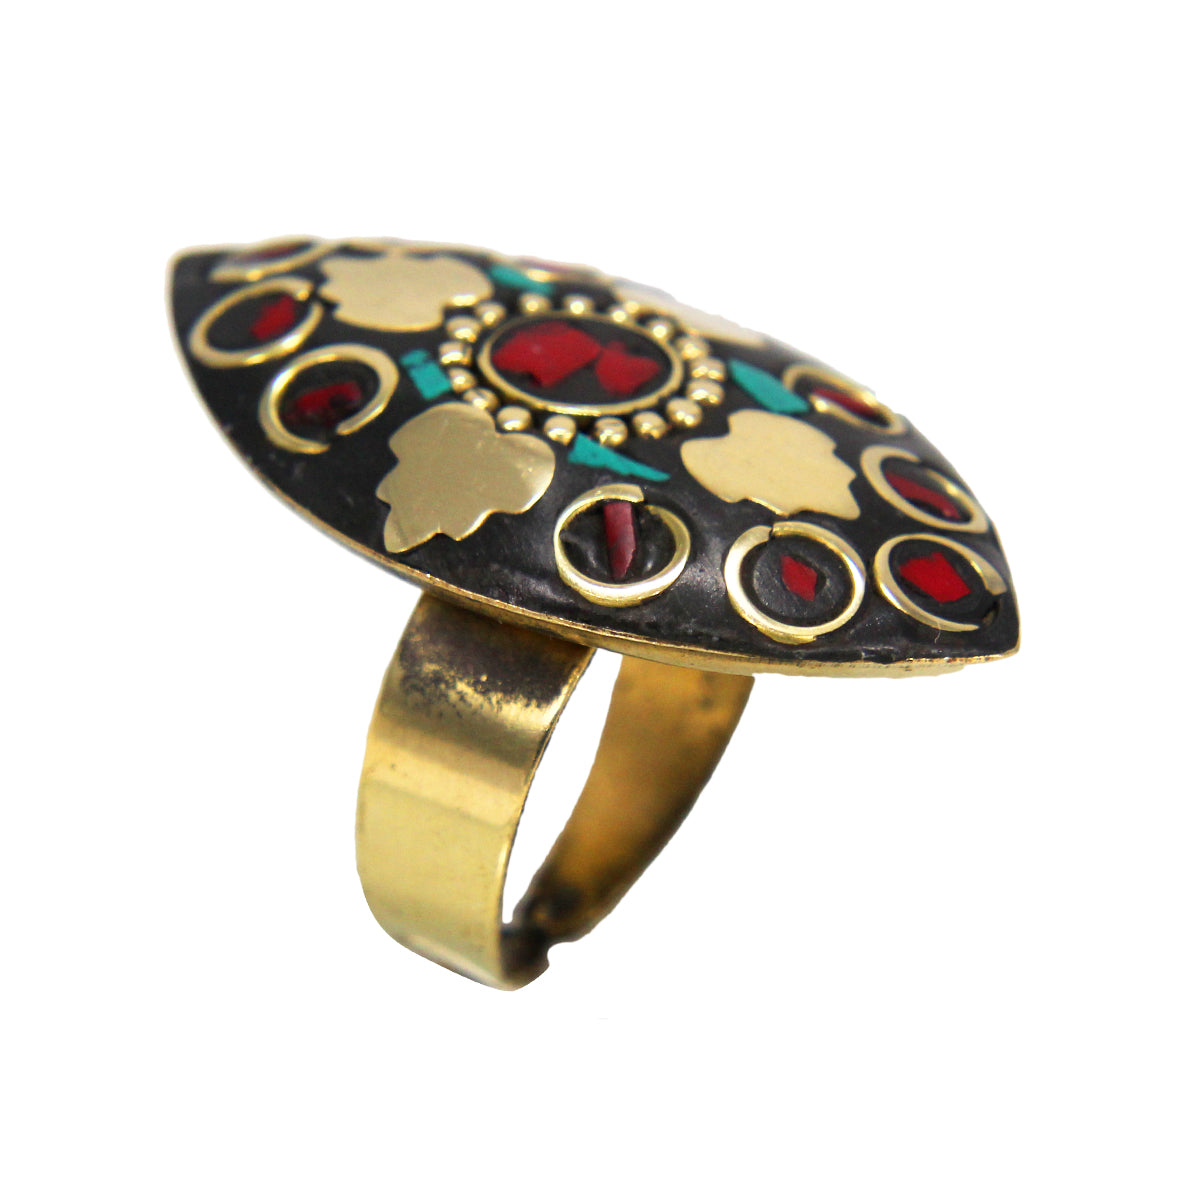 Beautiful Bohemian Black Golden Leaf Shaped Ring with Blue Red Stone Boho Tibetian Work